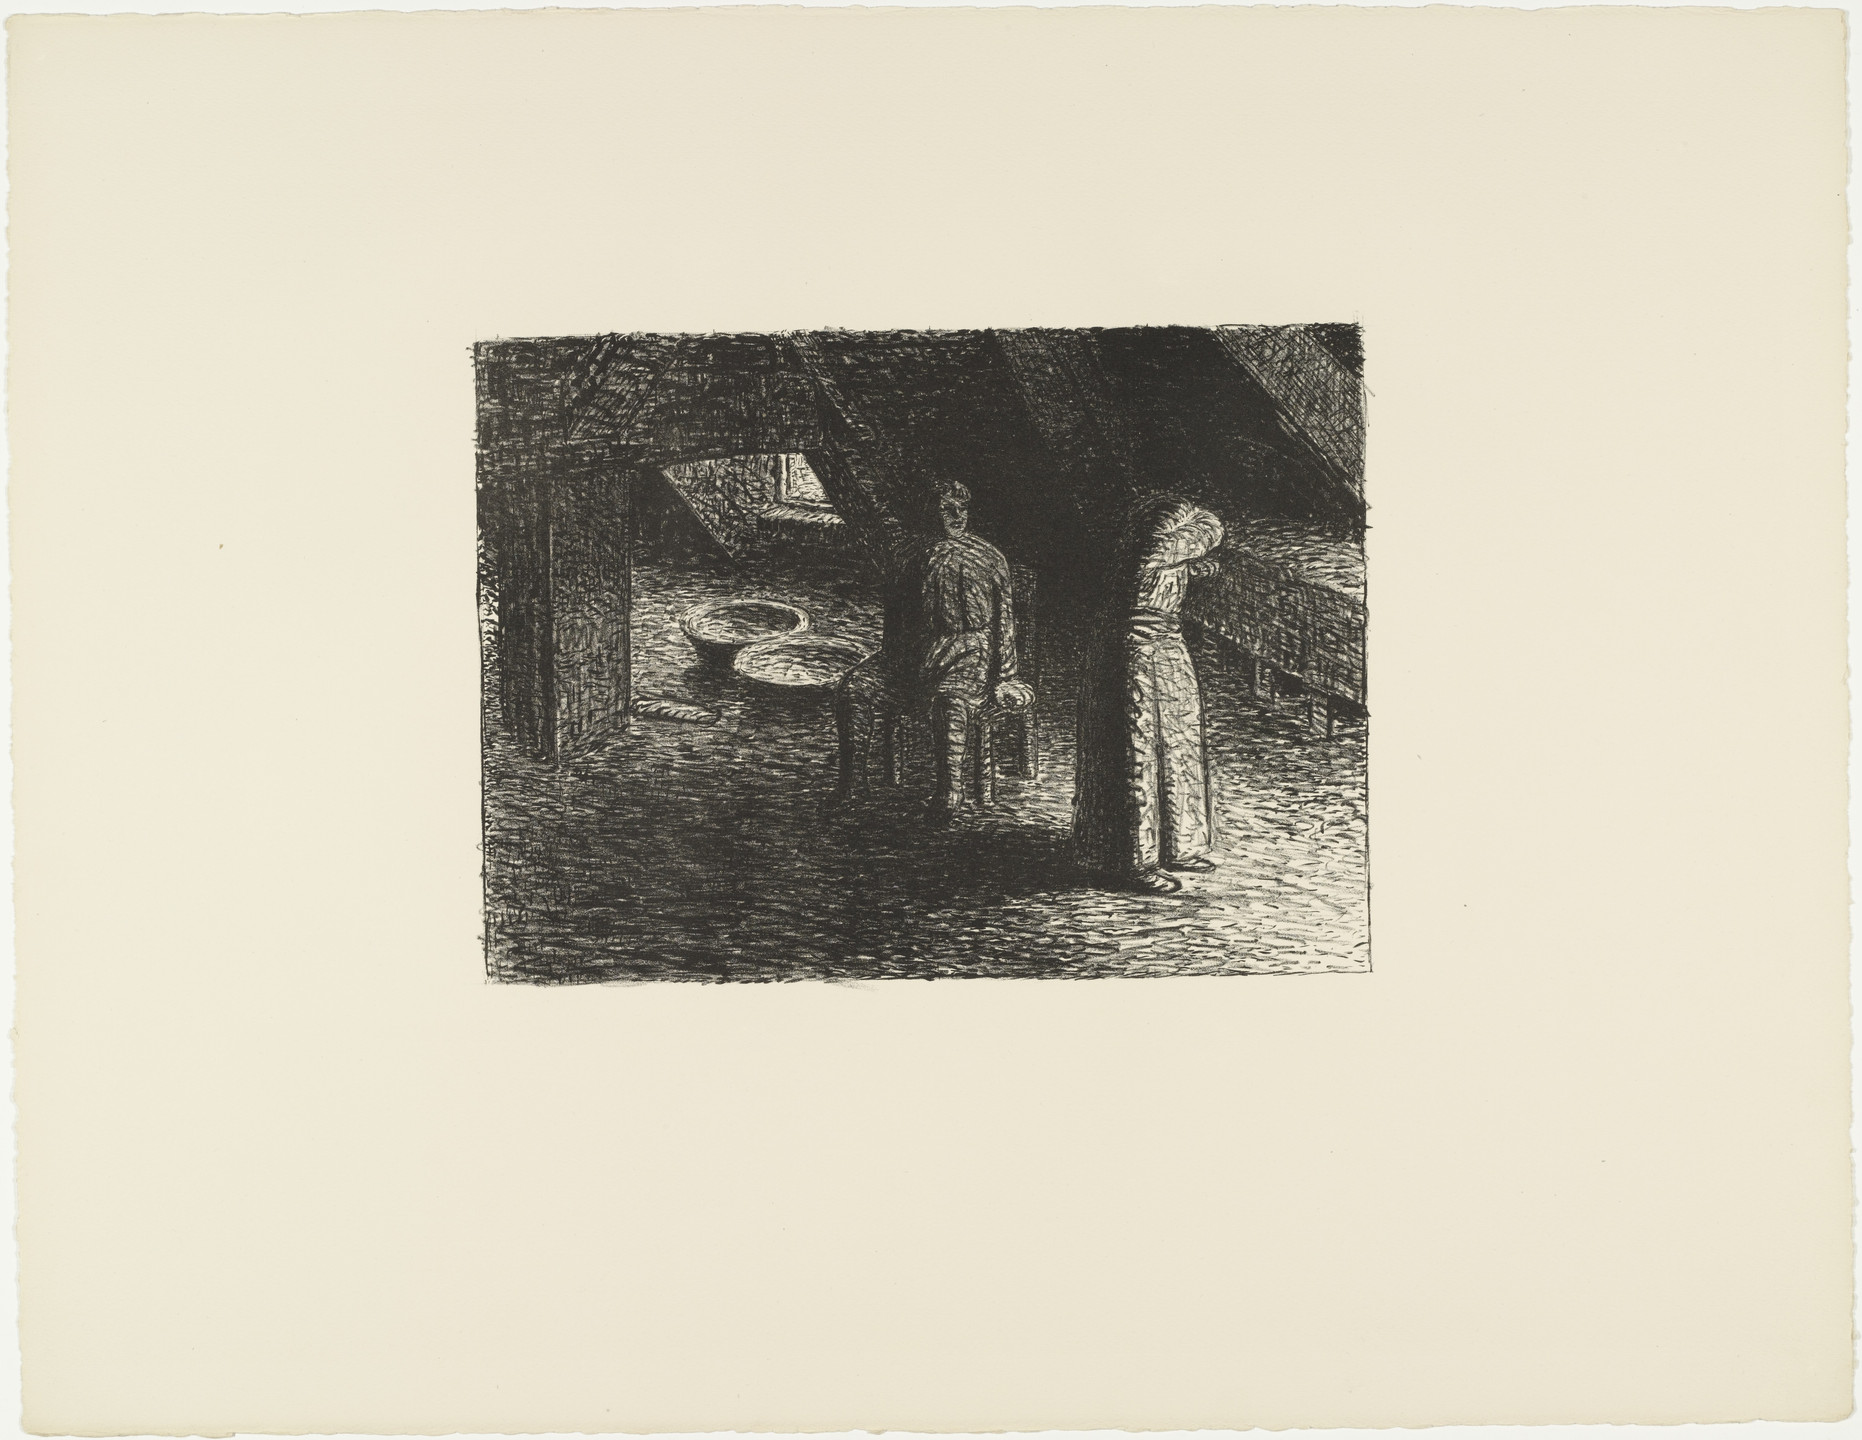 Ernst Barlach. The Guilty Woman (Die Schuldbewußte) from The Dead Day (Der tote Tag). (1910-11, published 1912)